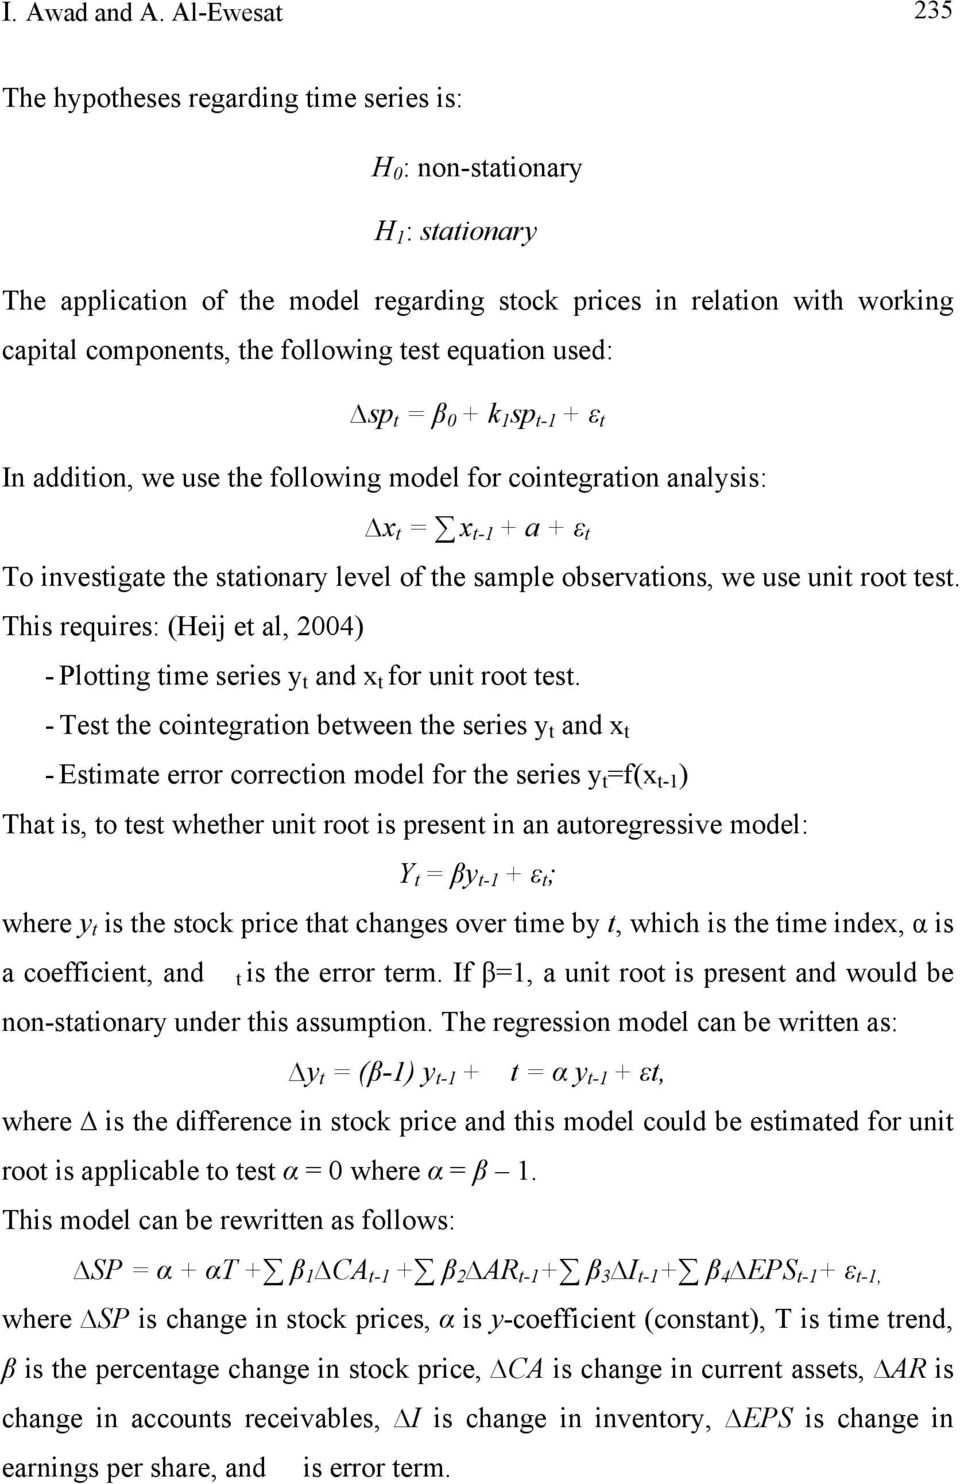 following test equation used: sp t = β 0 + k 1 sp t-1 + ε t In addition, we use the following model for cointegration analysis: x t = x t-1 + a + ε t To investigate the stationary level of the sample